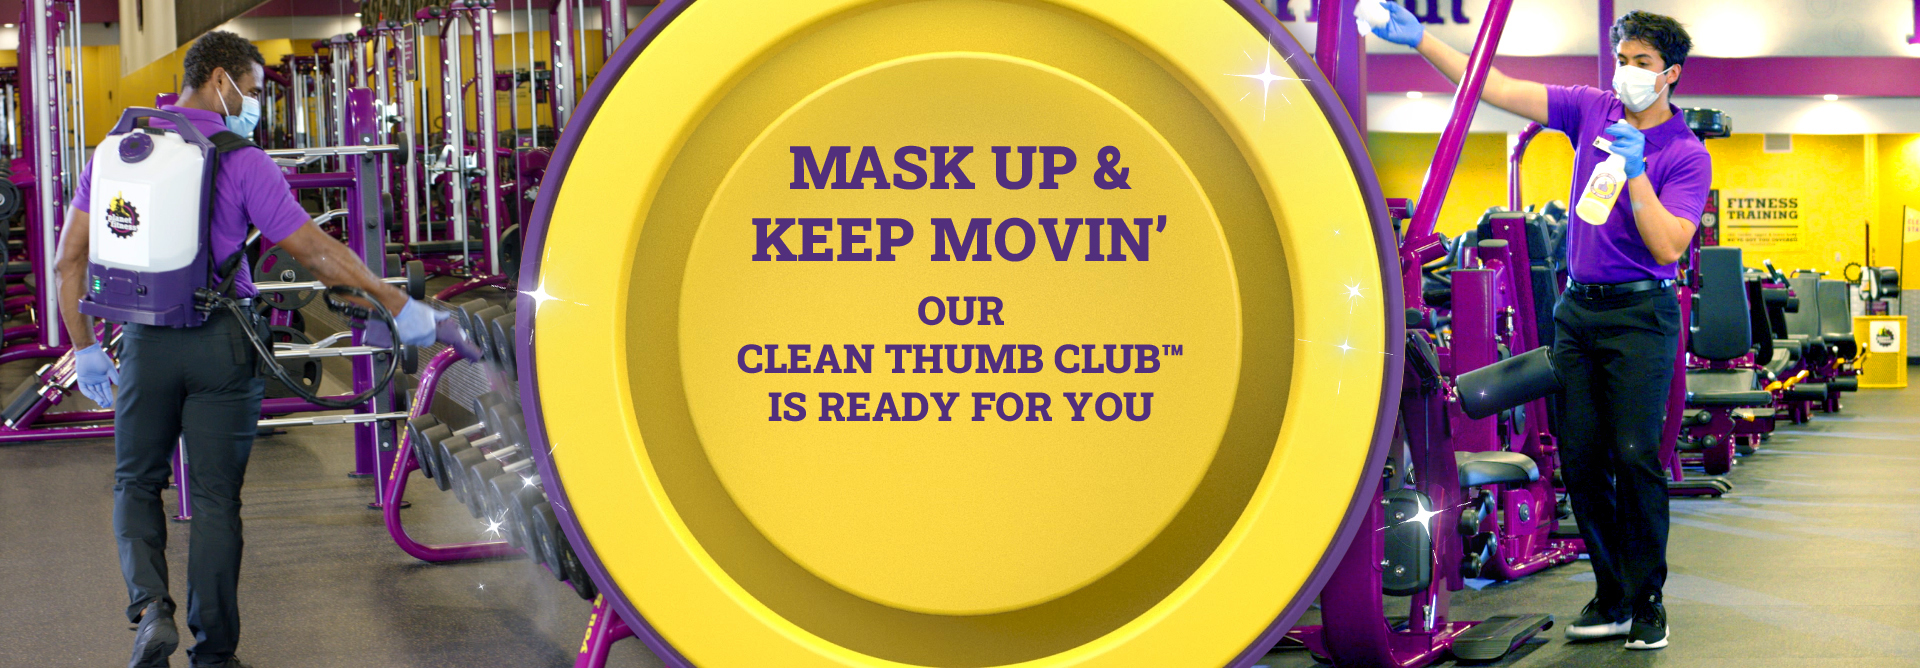 mask up & keep movin' our CLEAN THUMB CLUB™ is ready for you!